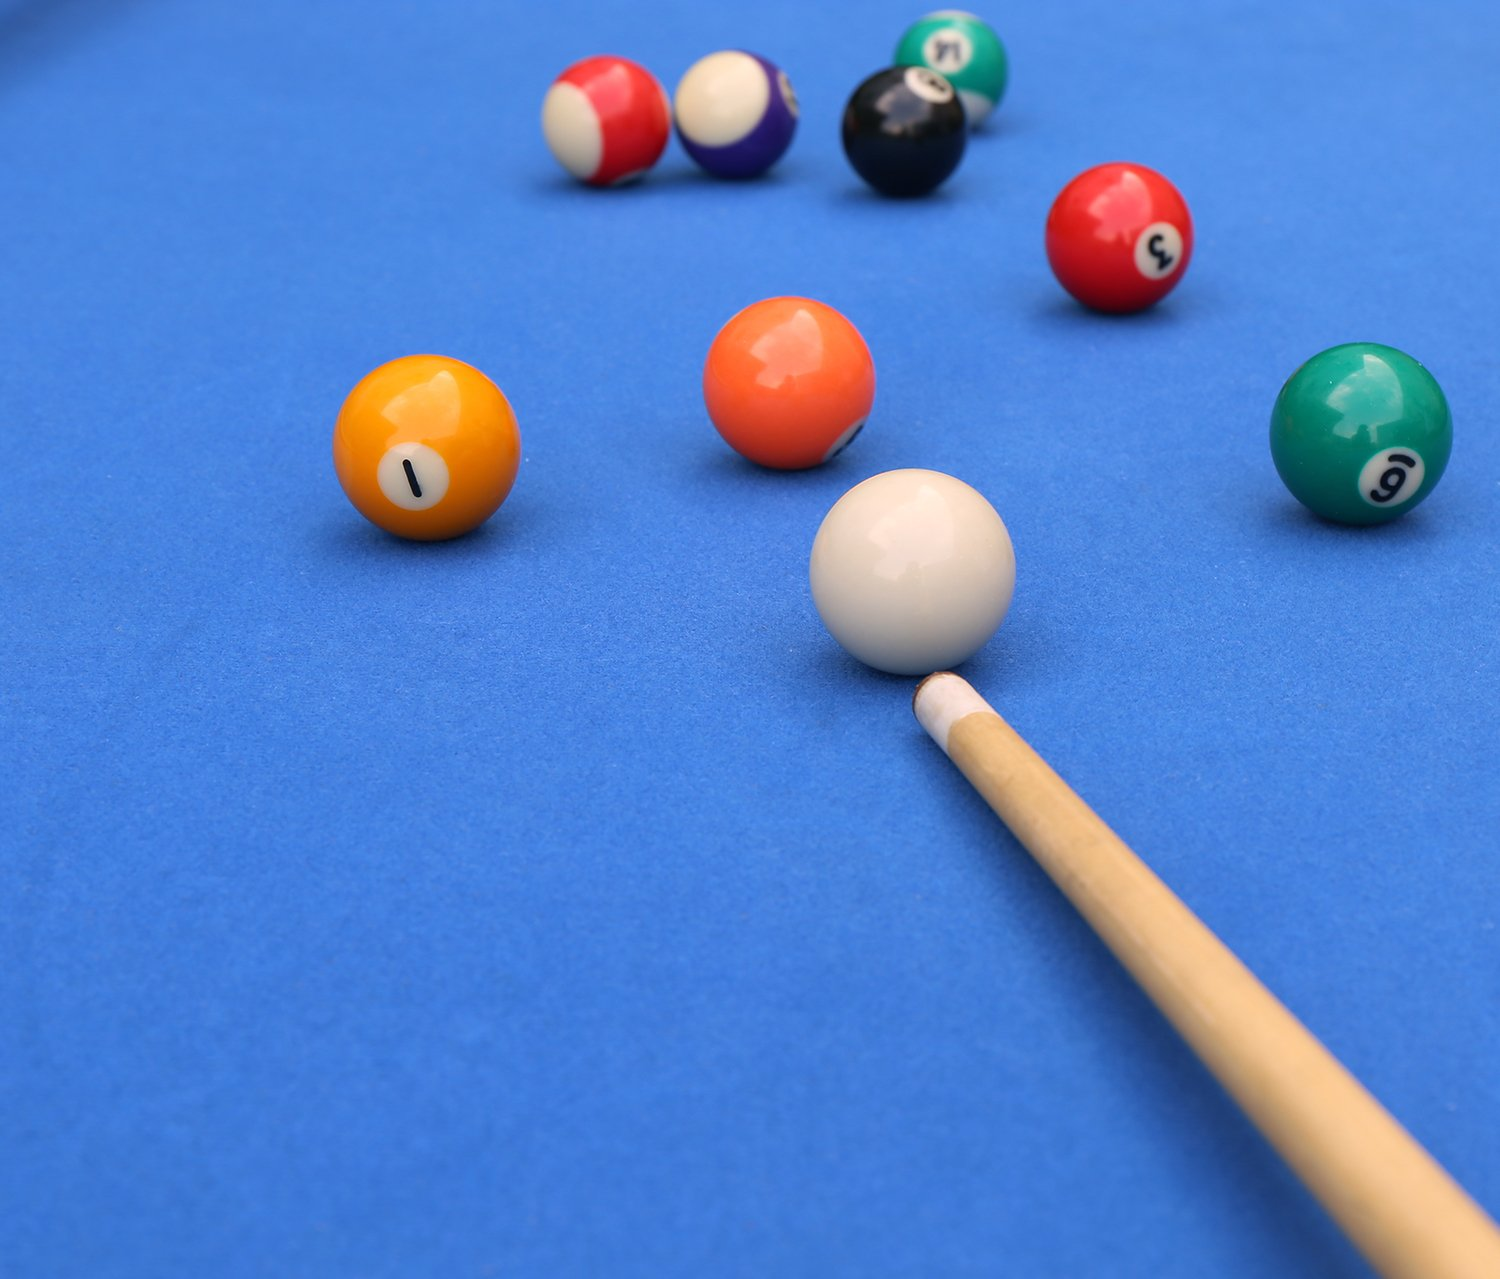 billiard pool hysterical poolmogi this in horrific the painted emoji debug reveal of life table balls